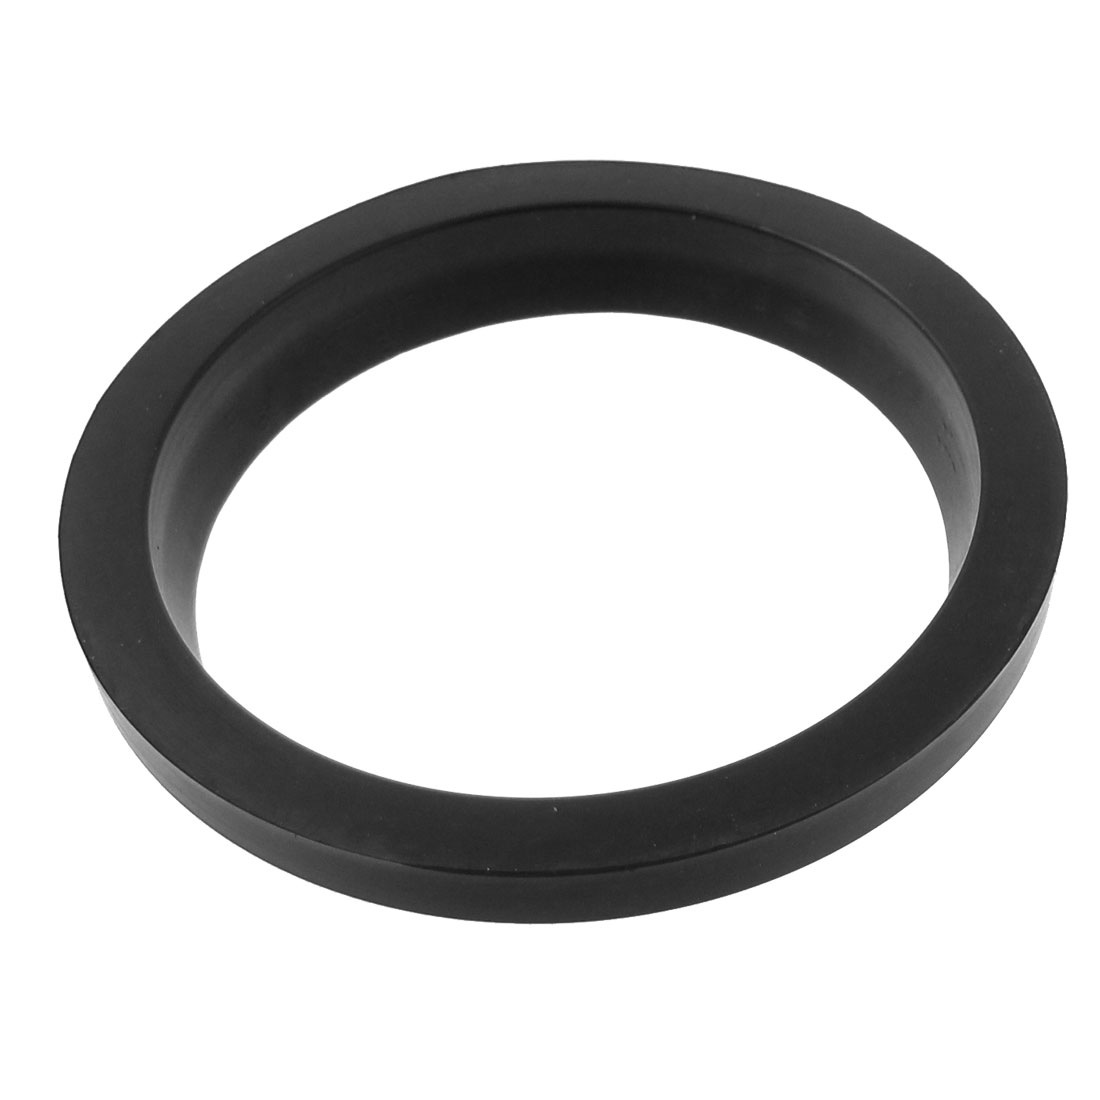 PU Piston Rod Dust Seal Sealing Ring FA 60x74x6x11mm